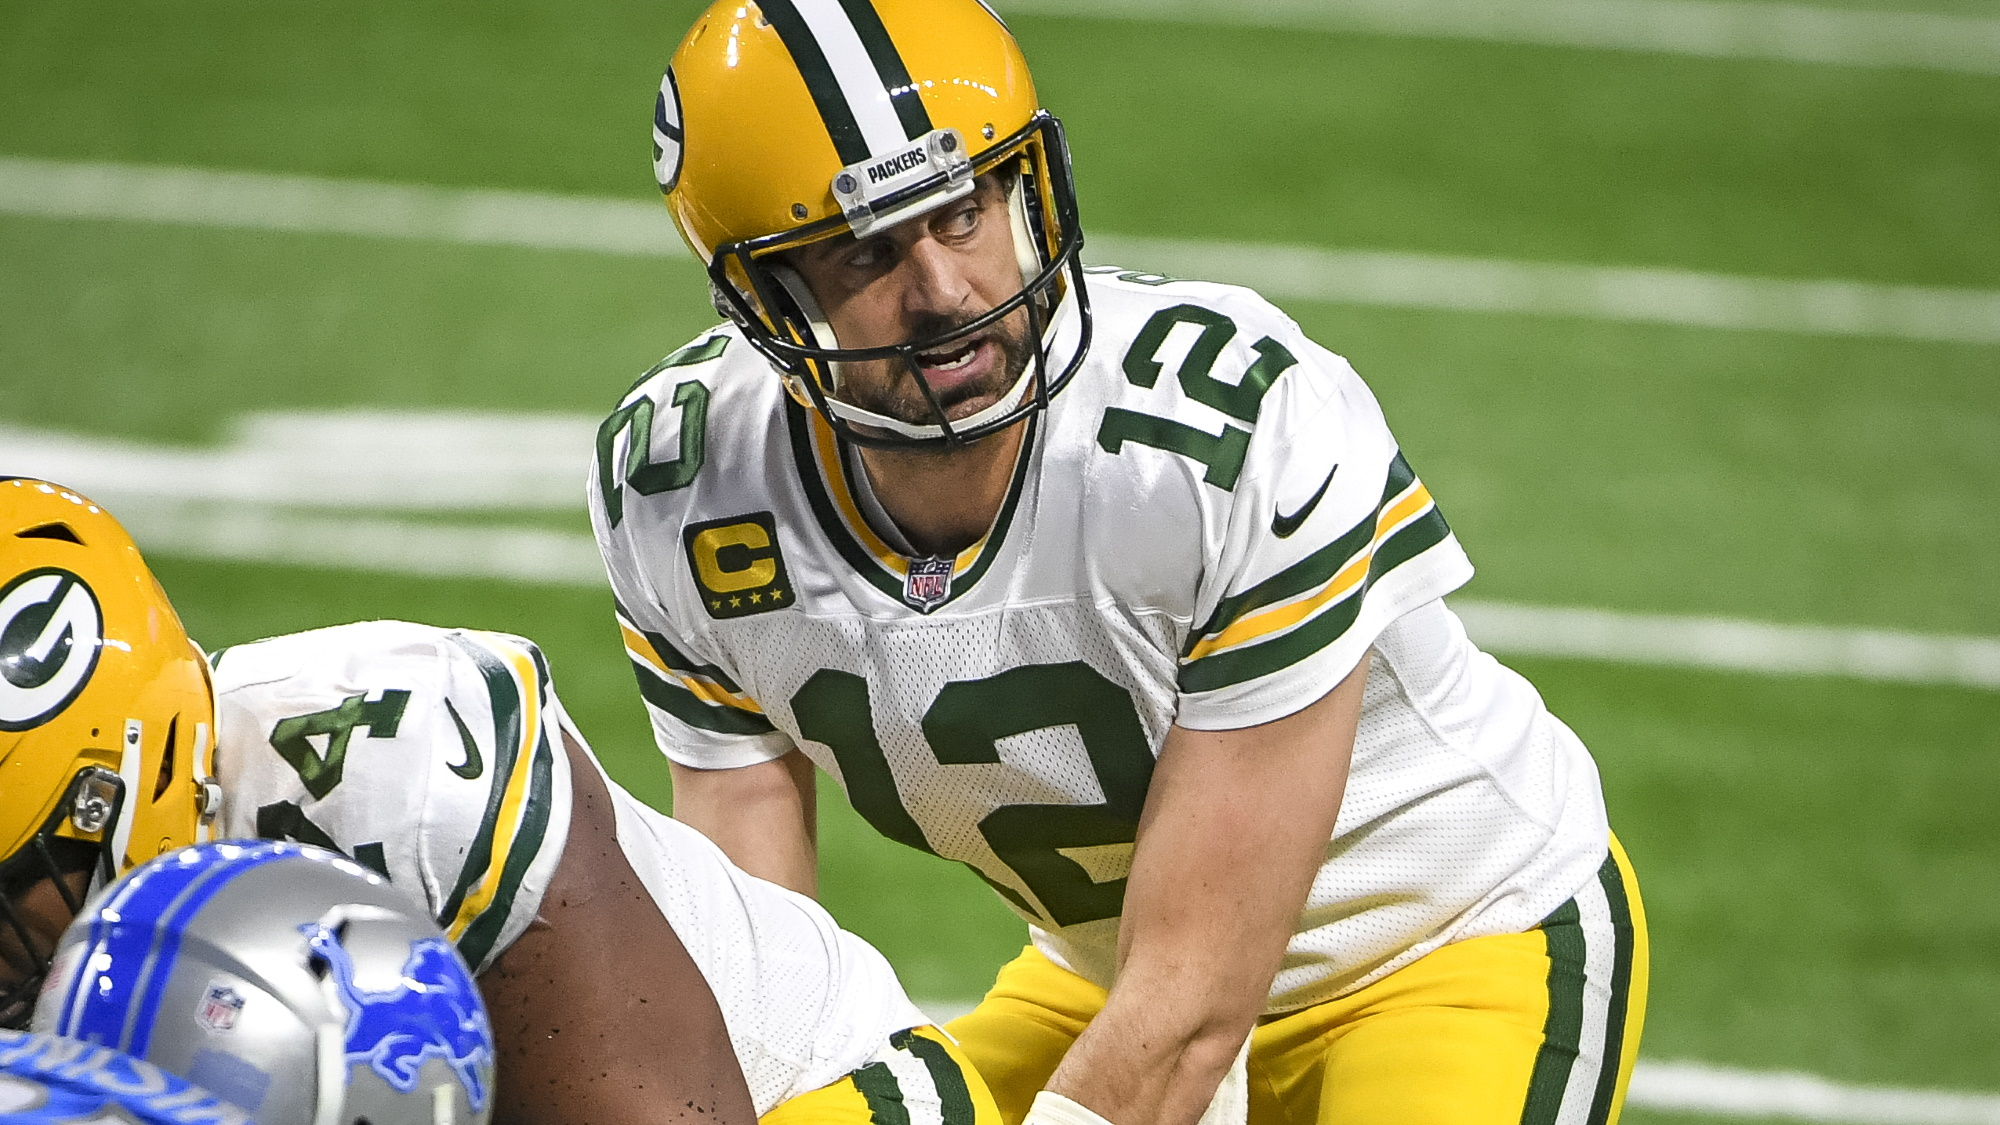 Lions vs Packers live stream: how to watch NFL Monday Night Football online anywhere